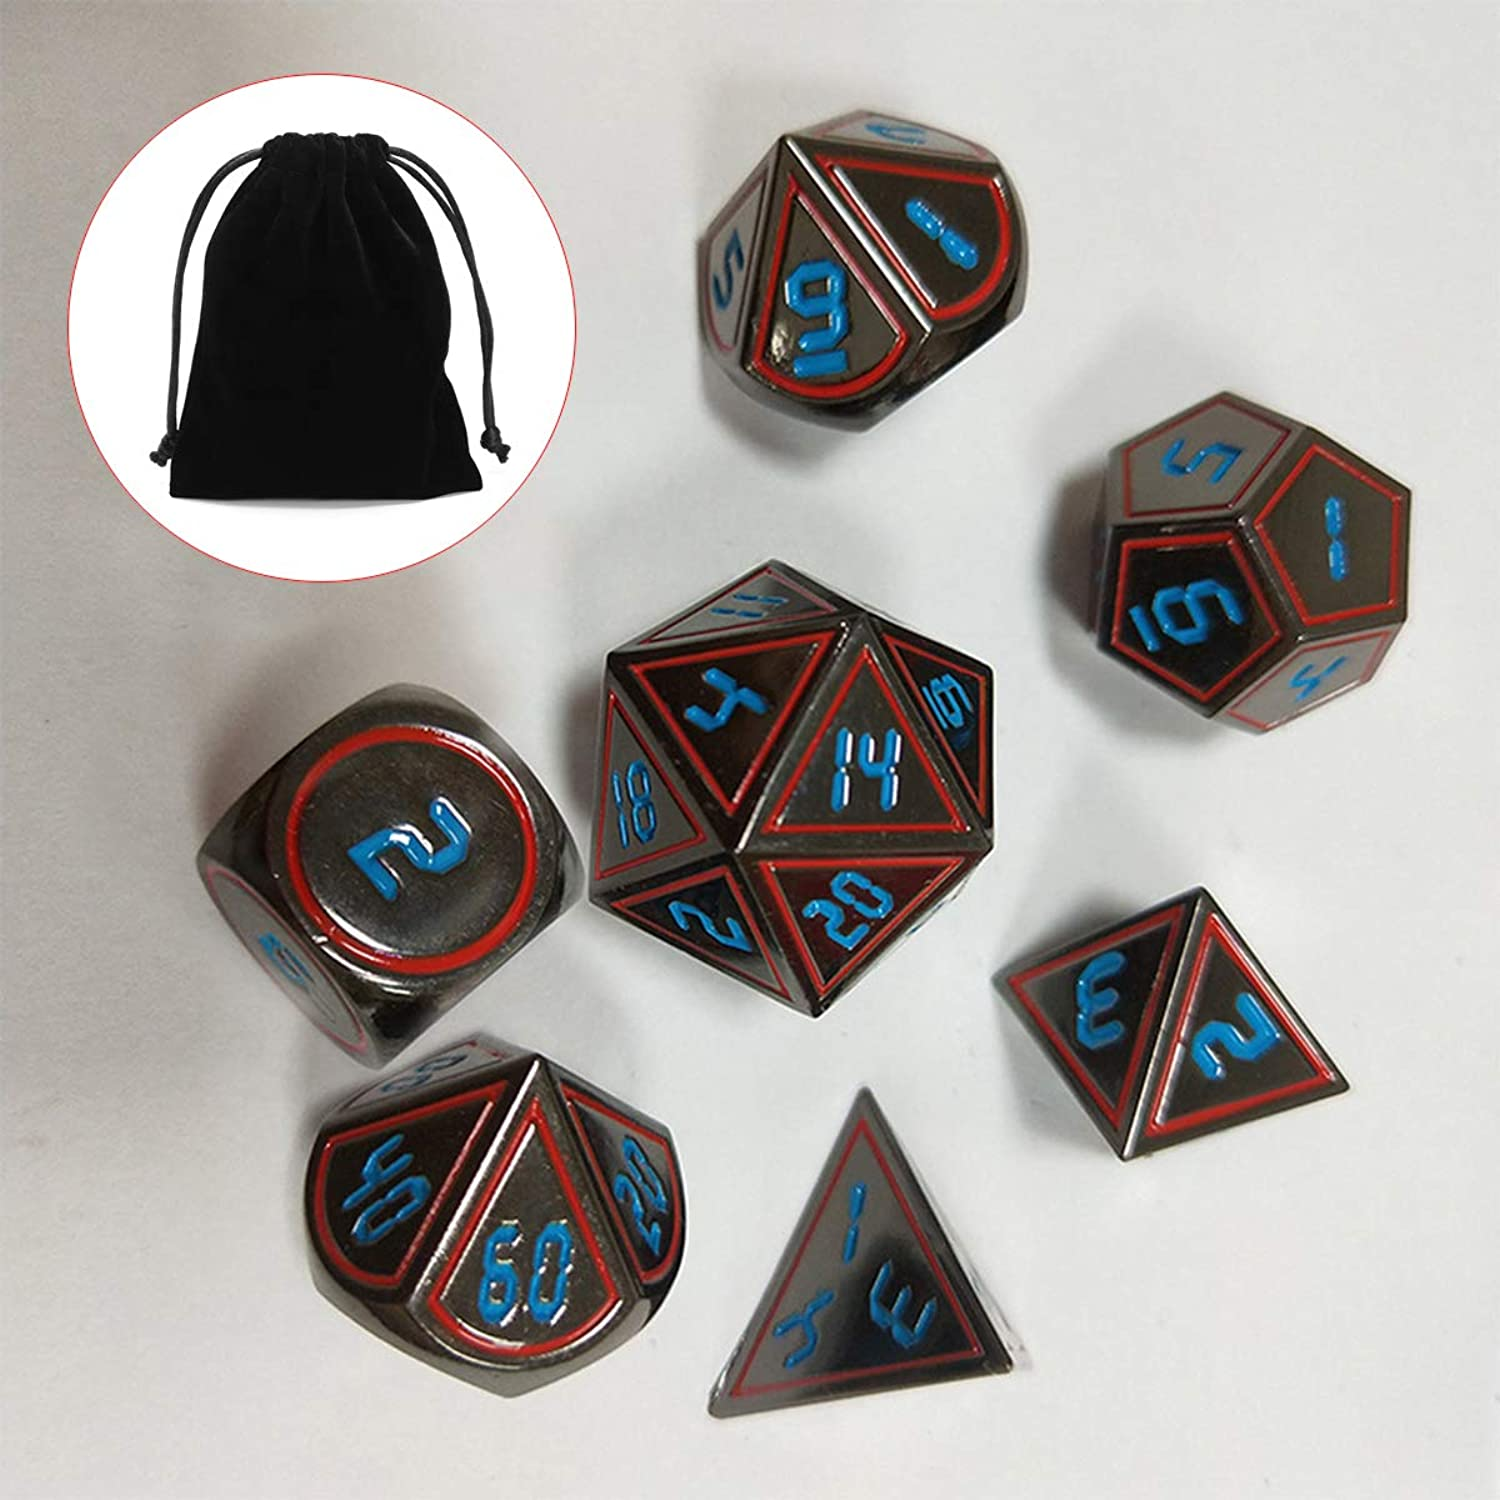 SONSAN 7Pcs Set Antique Metal Polyhedral Dices DND RPG MTG Role Playing Game Style A